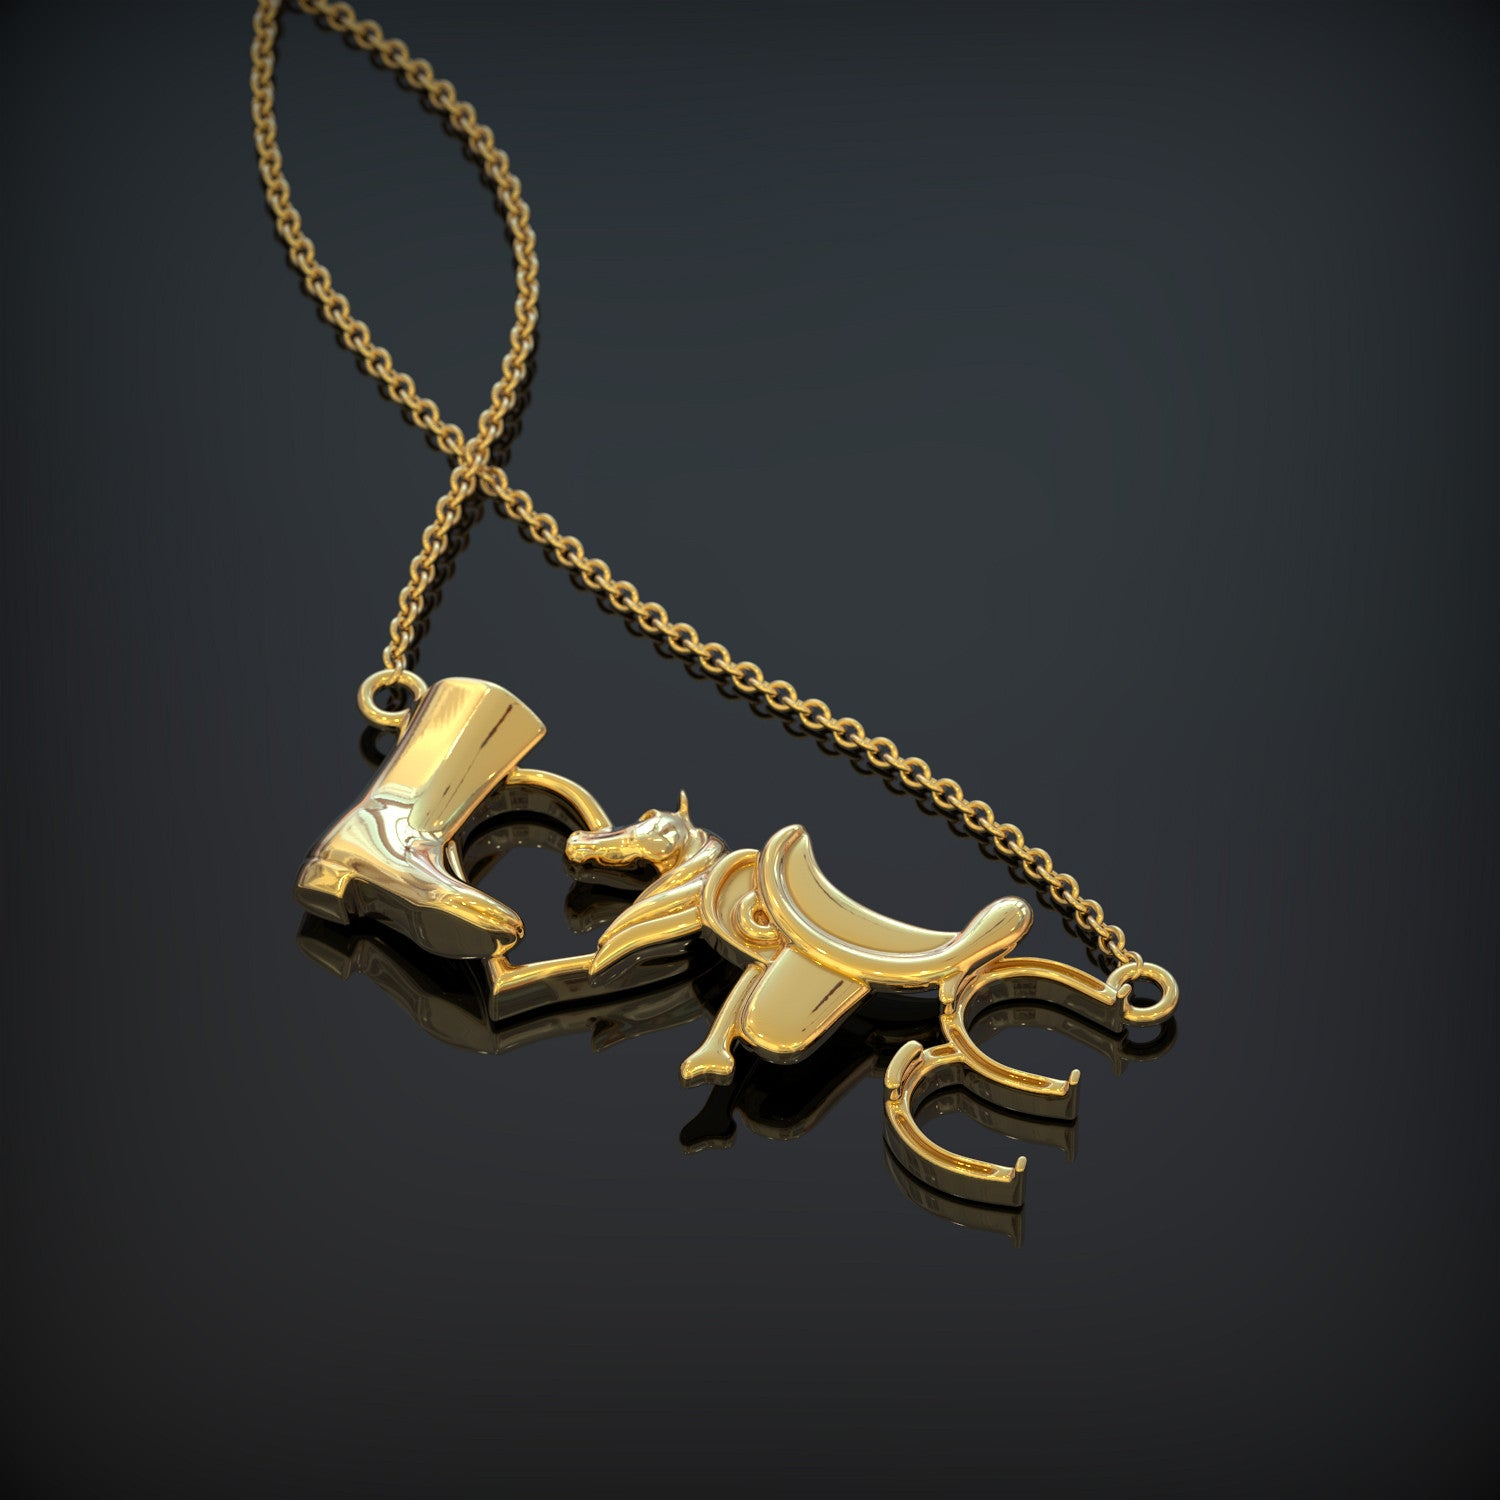 LOVE - Horse Riding Necklace